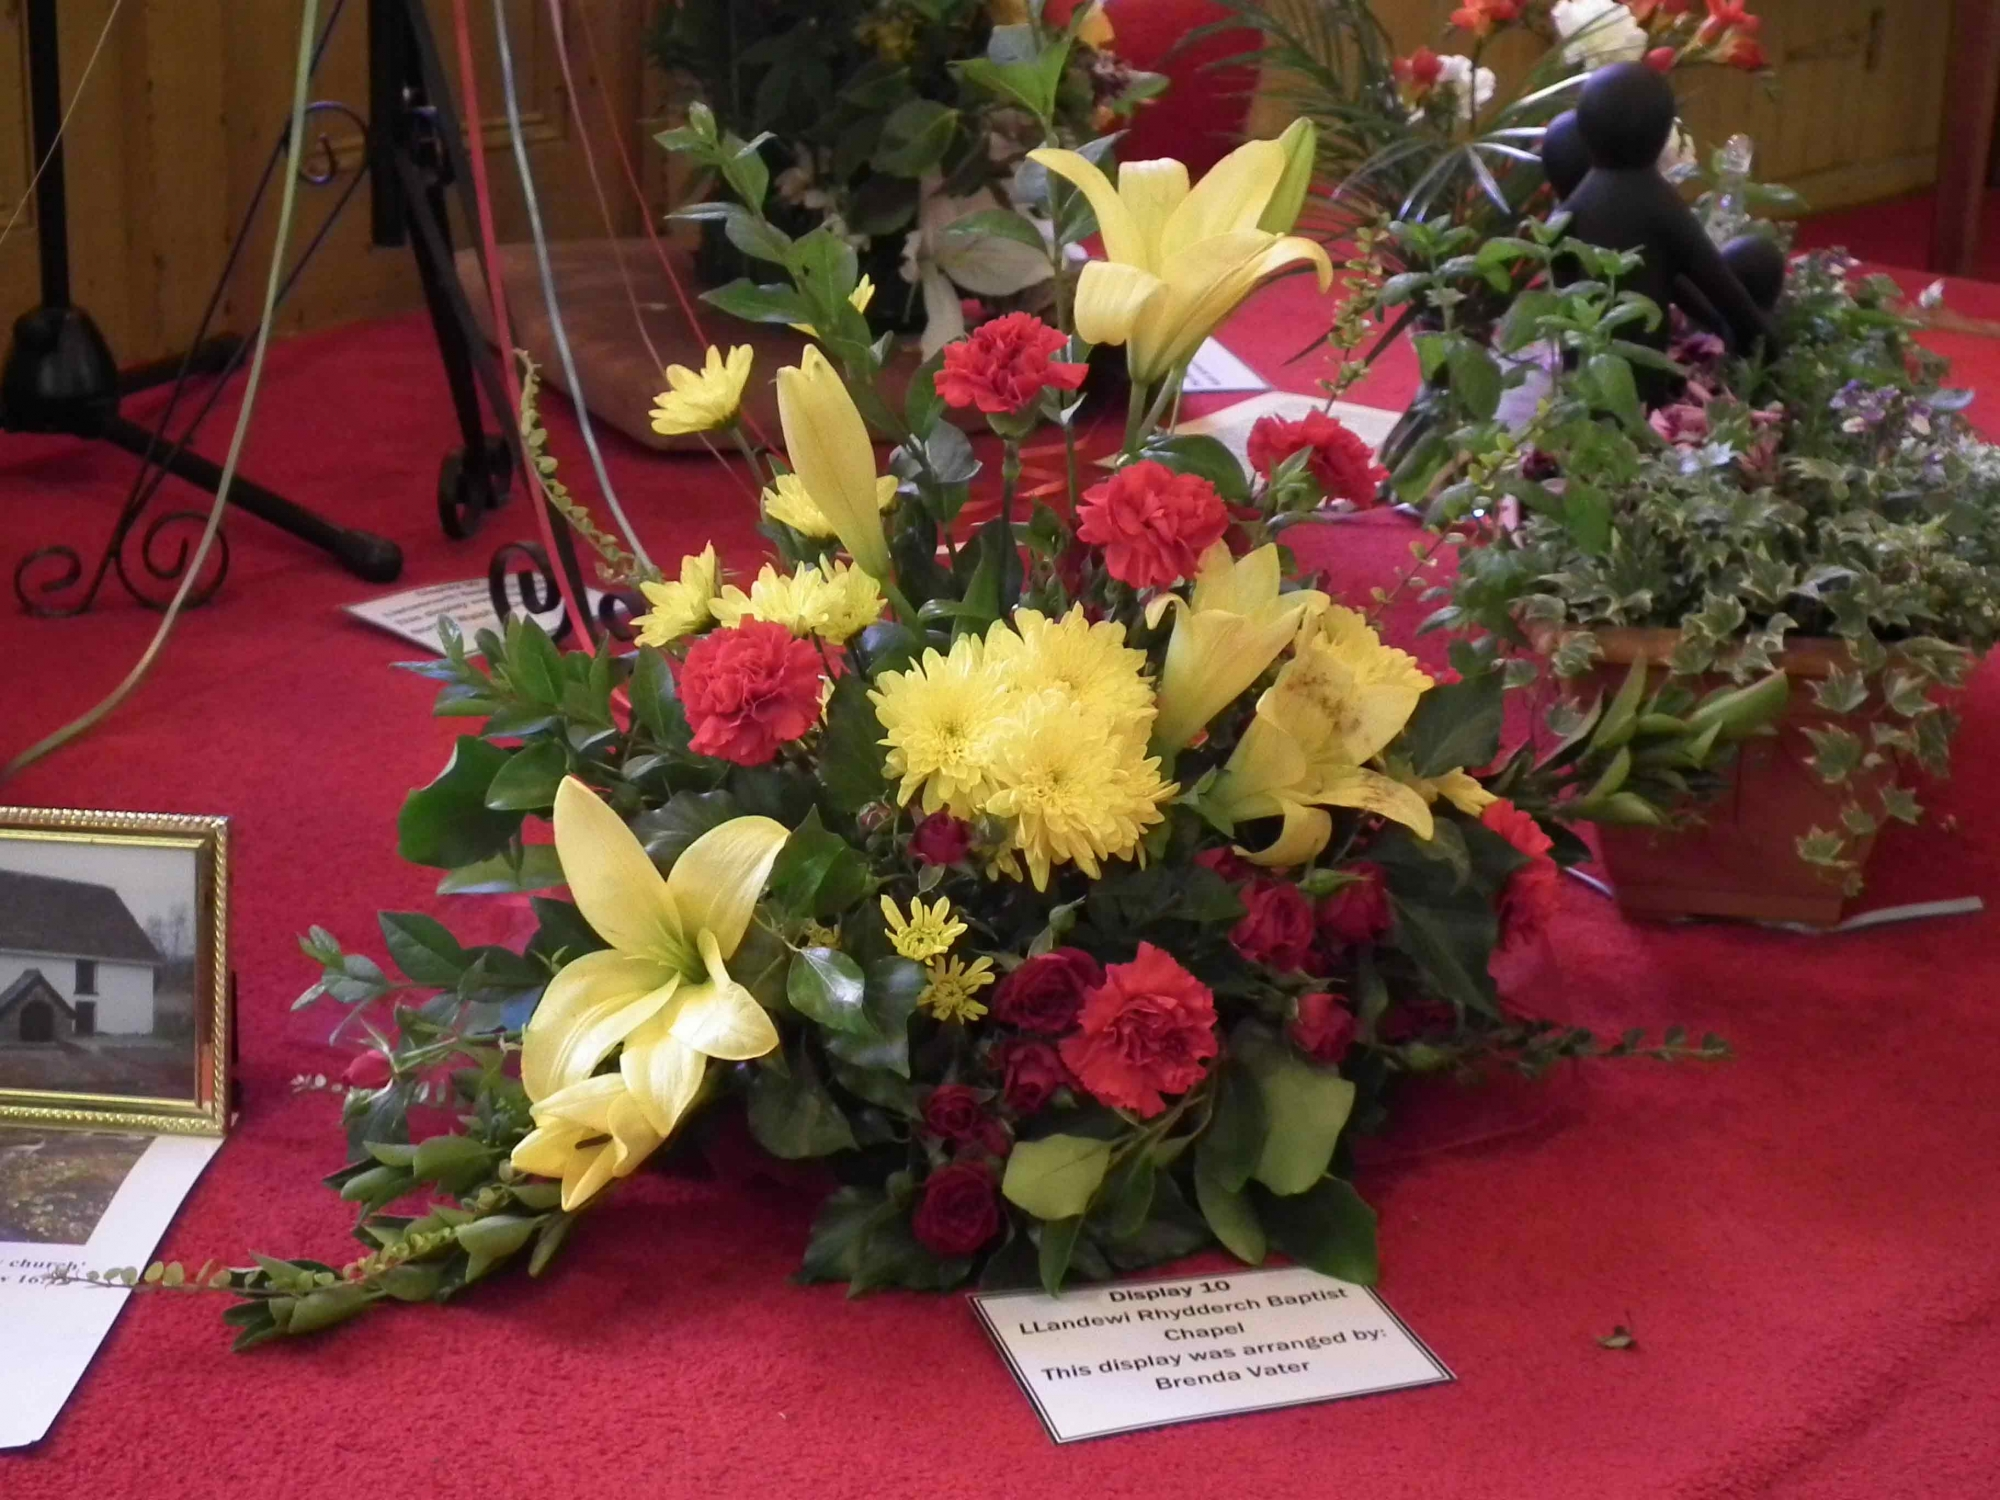 Contribution to Llanwenarth Baptist Chapel Flower Festival